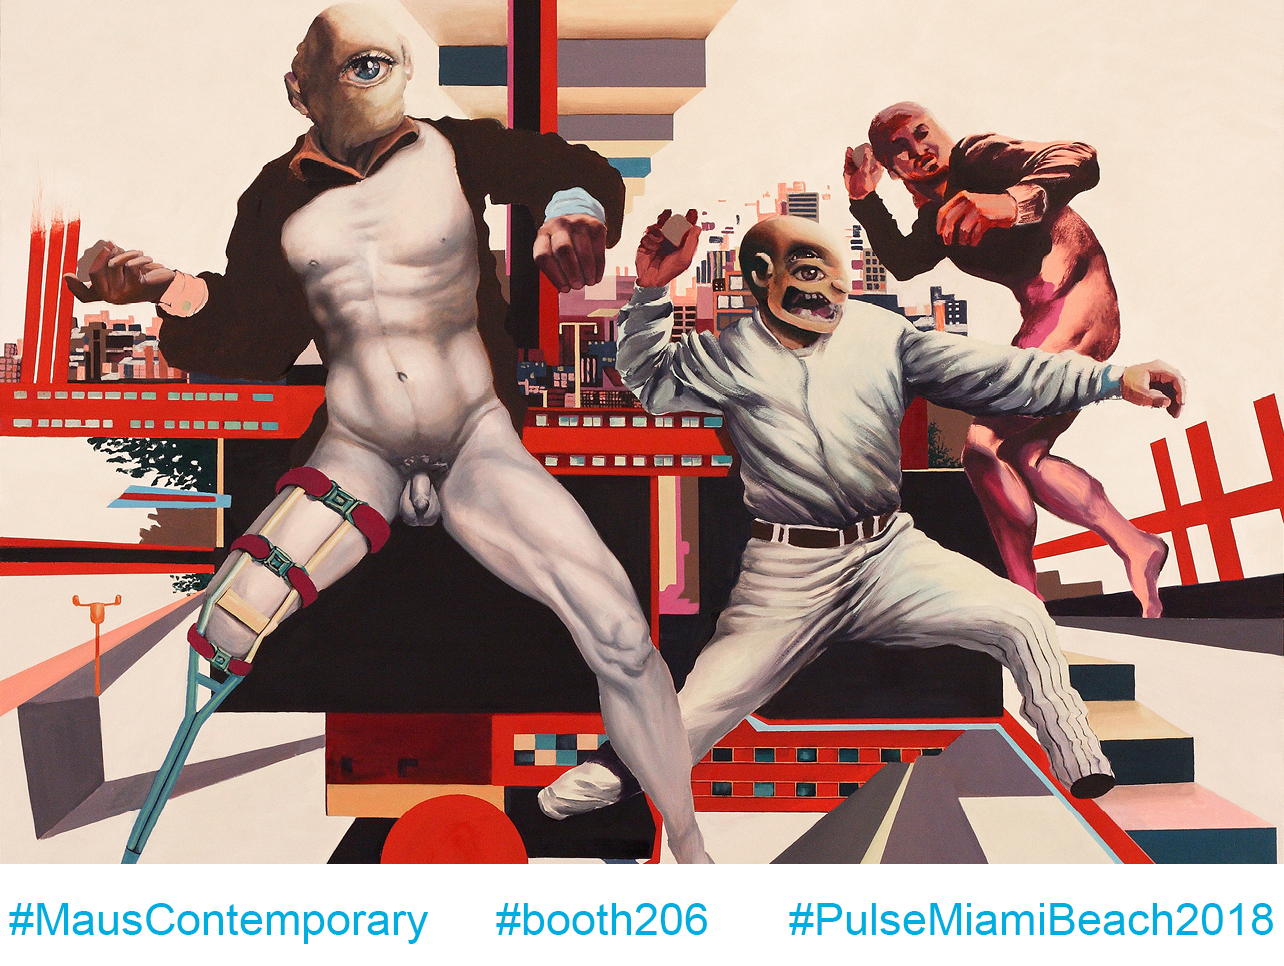 Maus Contemporary at Pulse Miami Beach 2018, December 6-9  |   click image for additional info on visiting Pulse